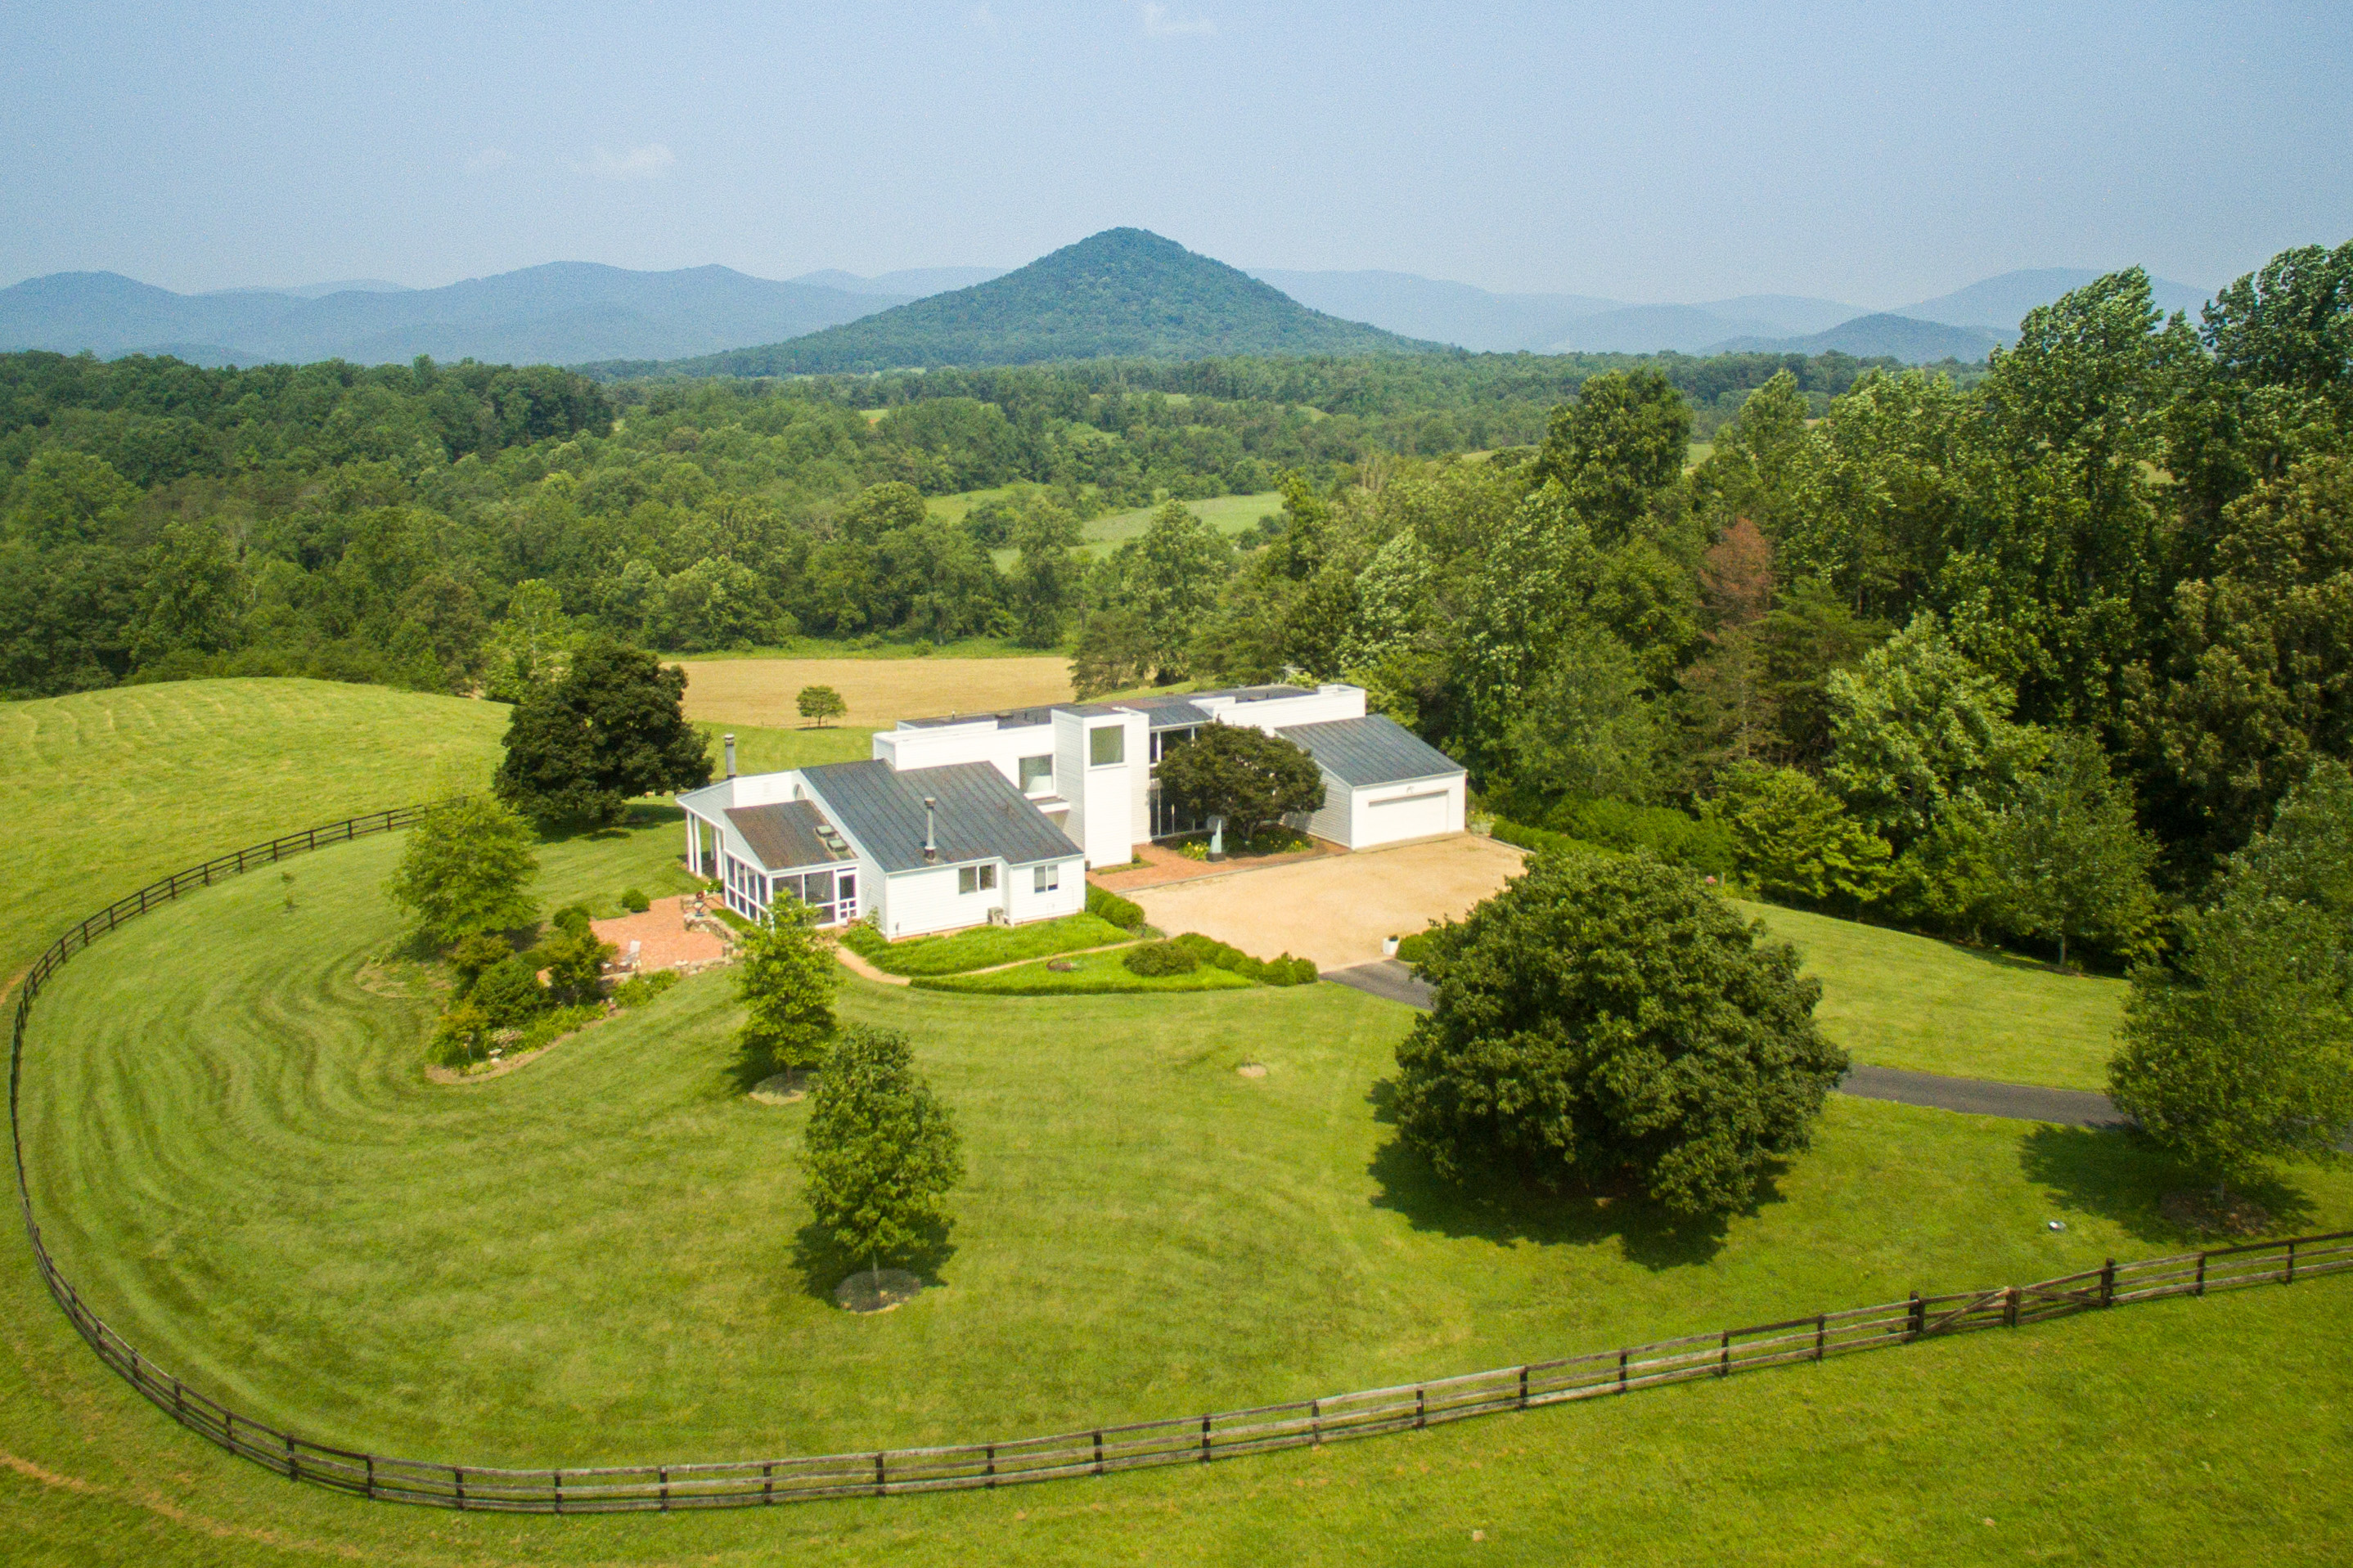 Single Family Home for Sale at Danwell Farm 777 Allen Road Charlottesville, Virginia, 22936 United States